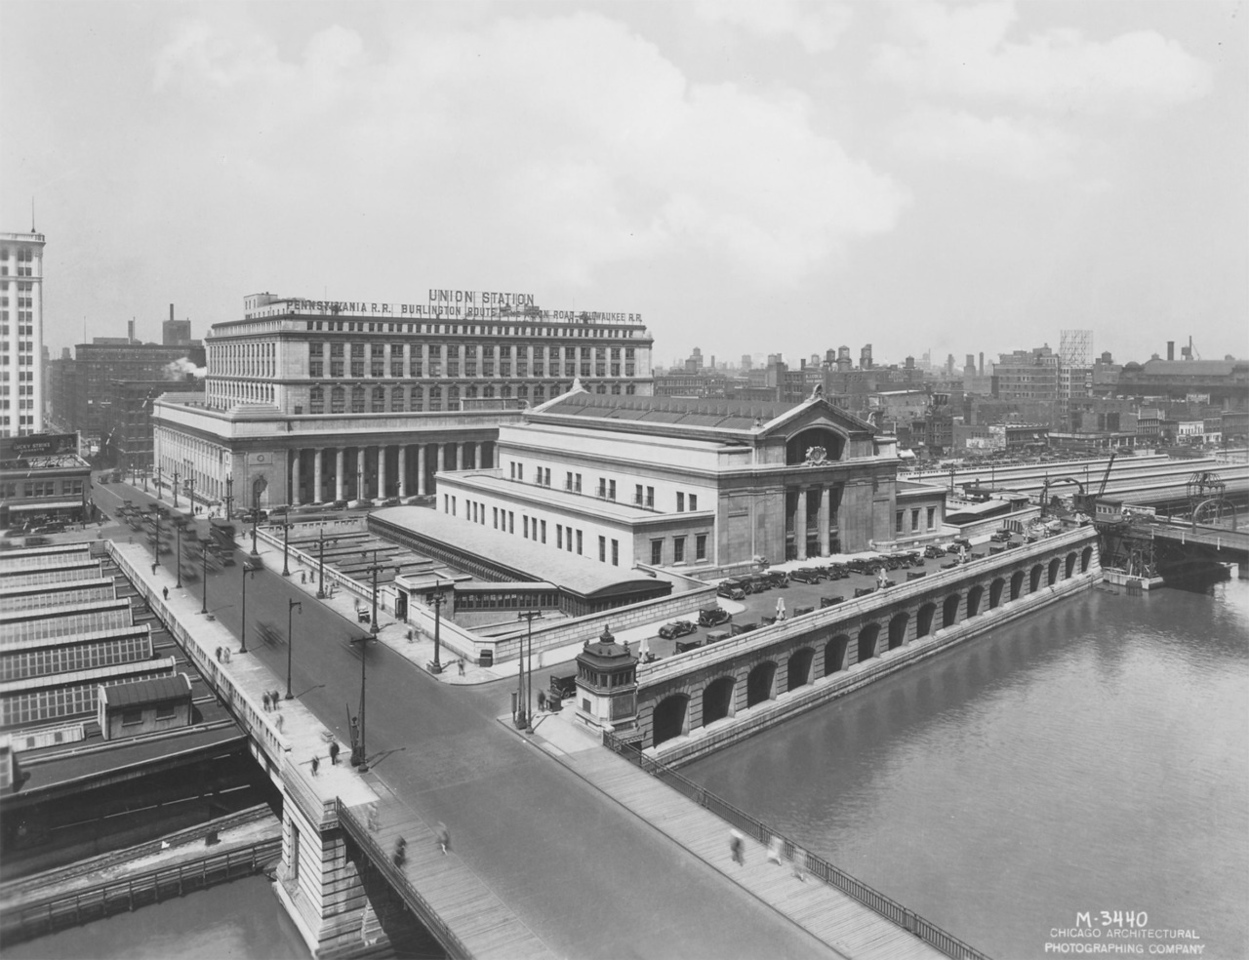 Union Station, 1925.  Photographer: Chicago Architectural Photographing Co. Source: Chicago Historical Society (ICHi-31909)   http://encyclopedia.chicagohistory.org/pages/3201.html